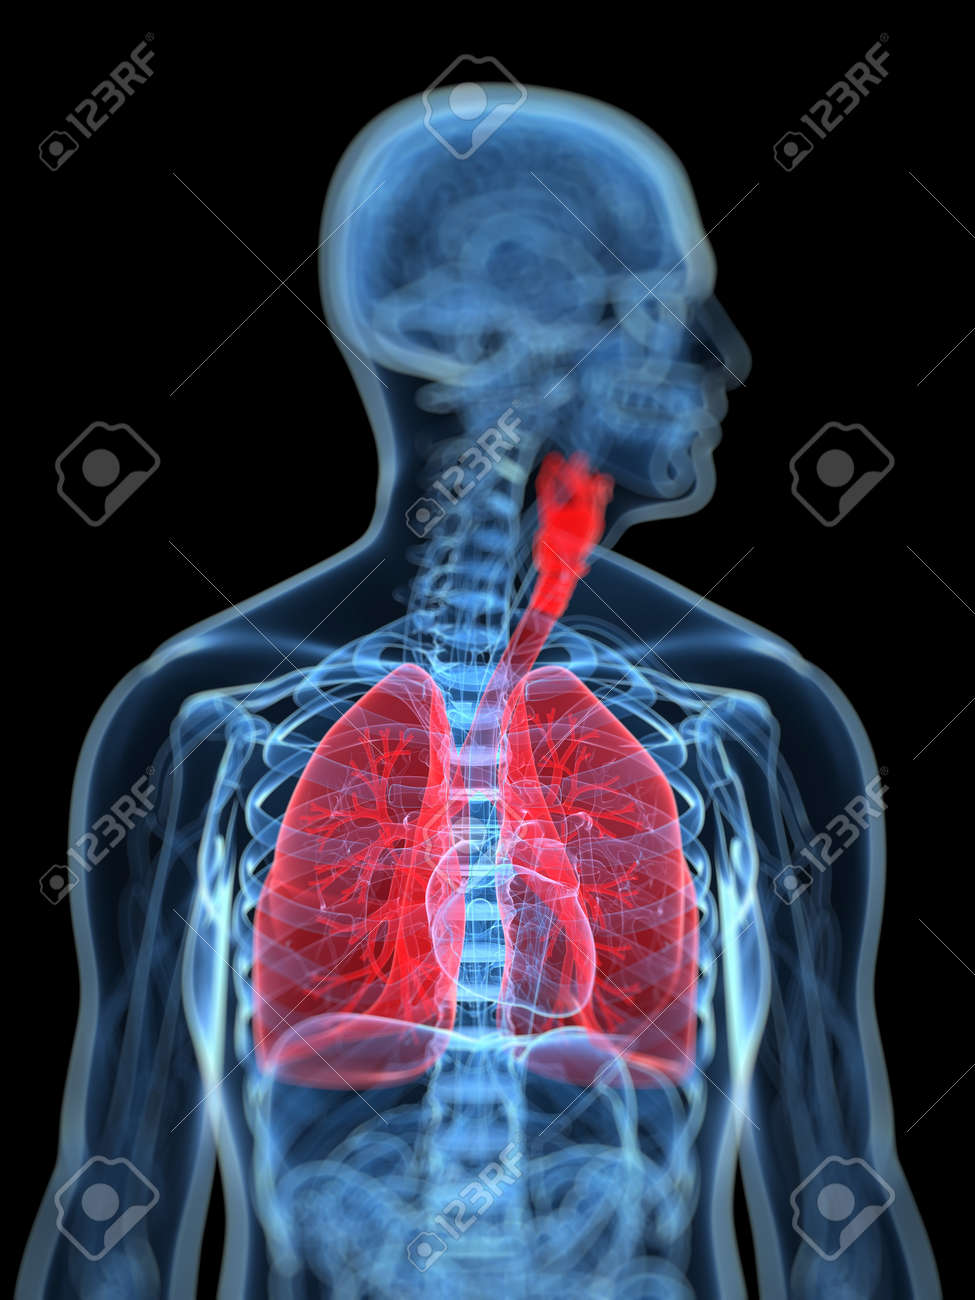 3d Rendered Medical Illustration Of The Human Respiratory System